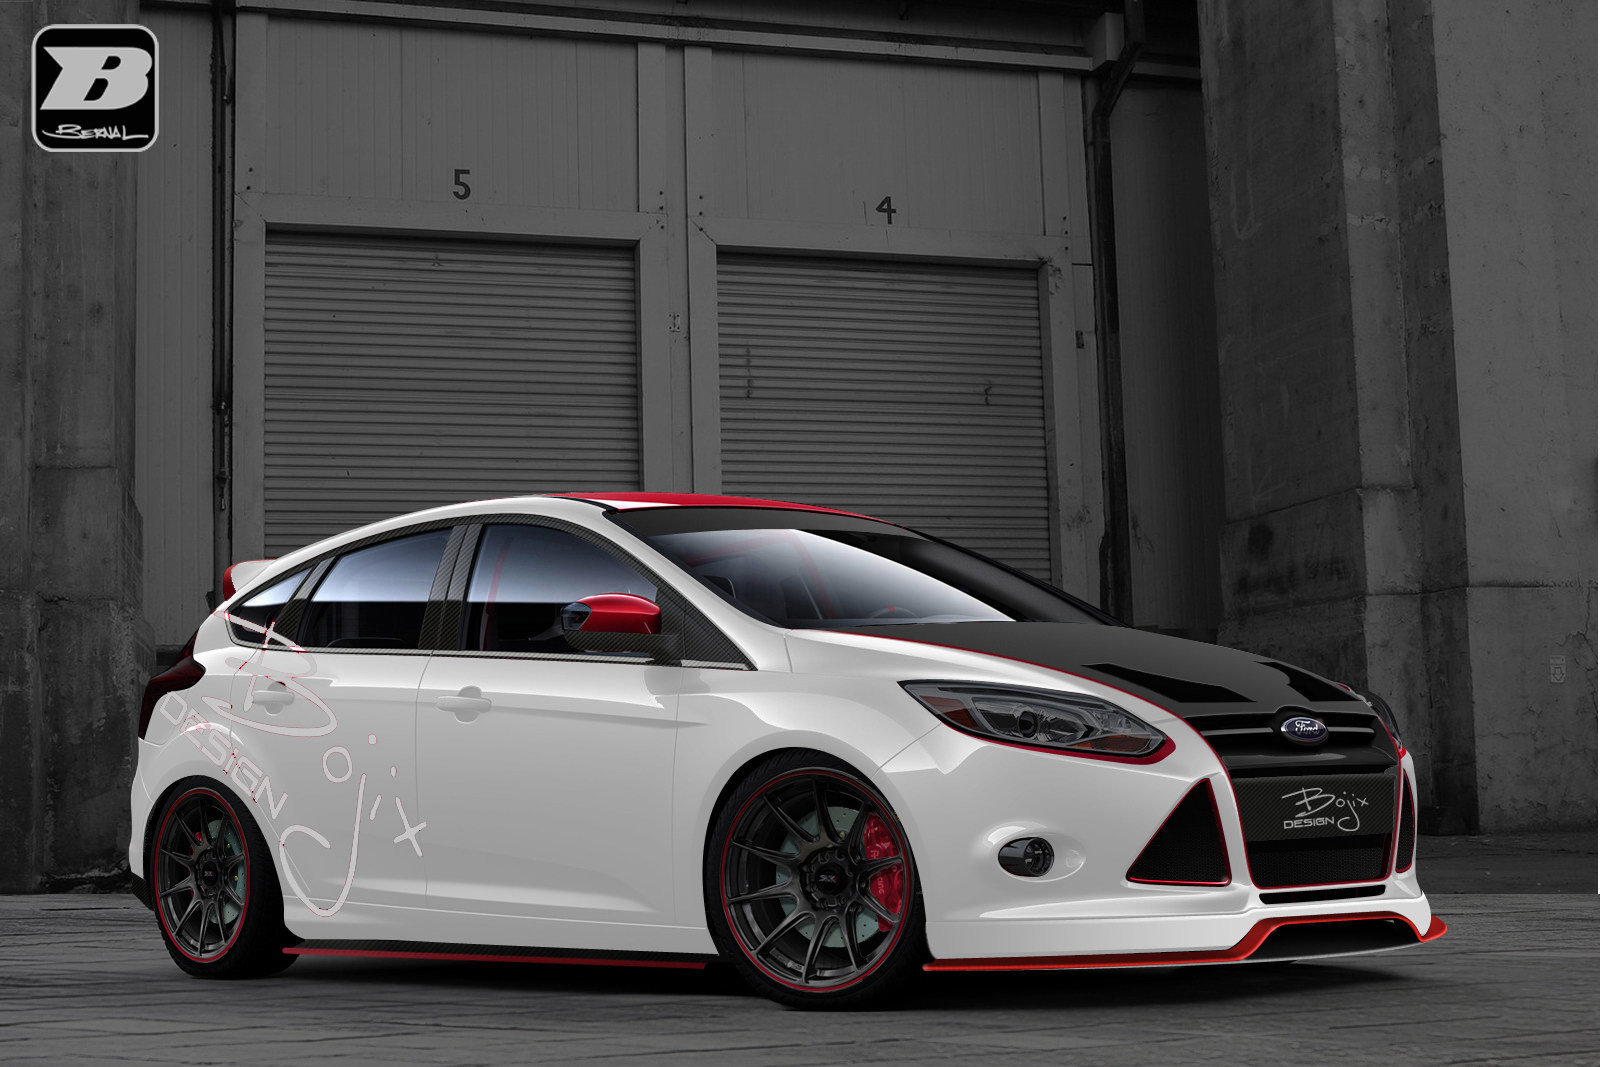 Ford Focus News And Reviews Top Speed 2002 Se Wagon 20 Liter Dohc 16valve Zetec 4 Cylinder 2012 By Bojix Design